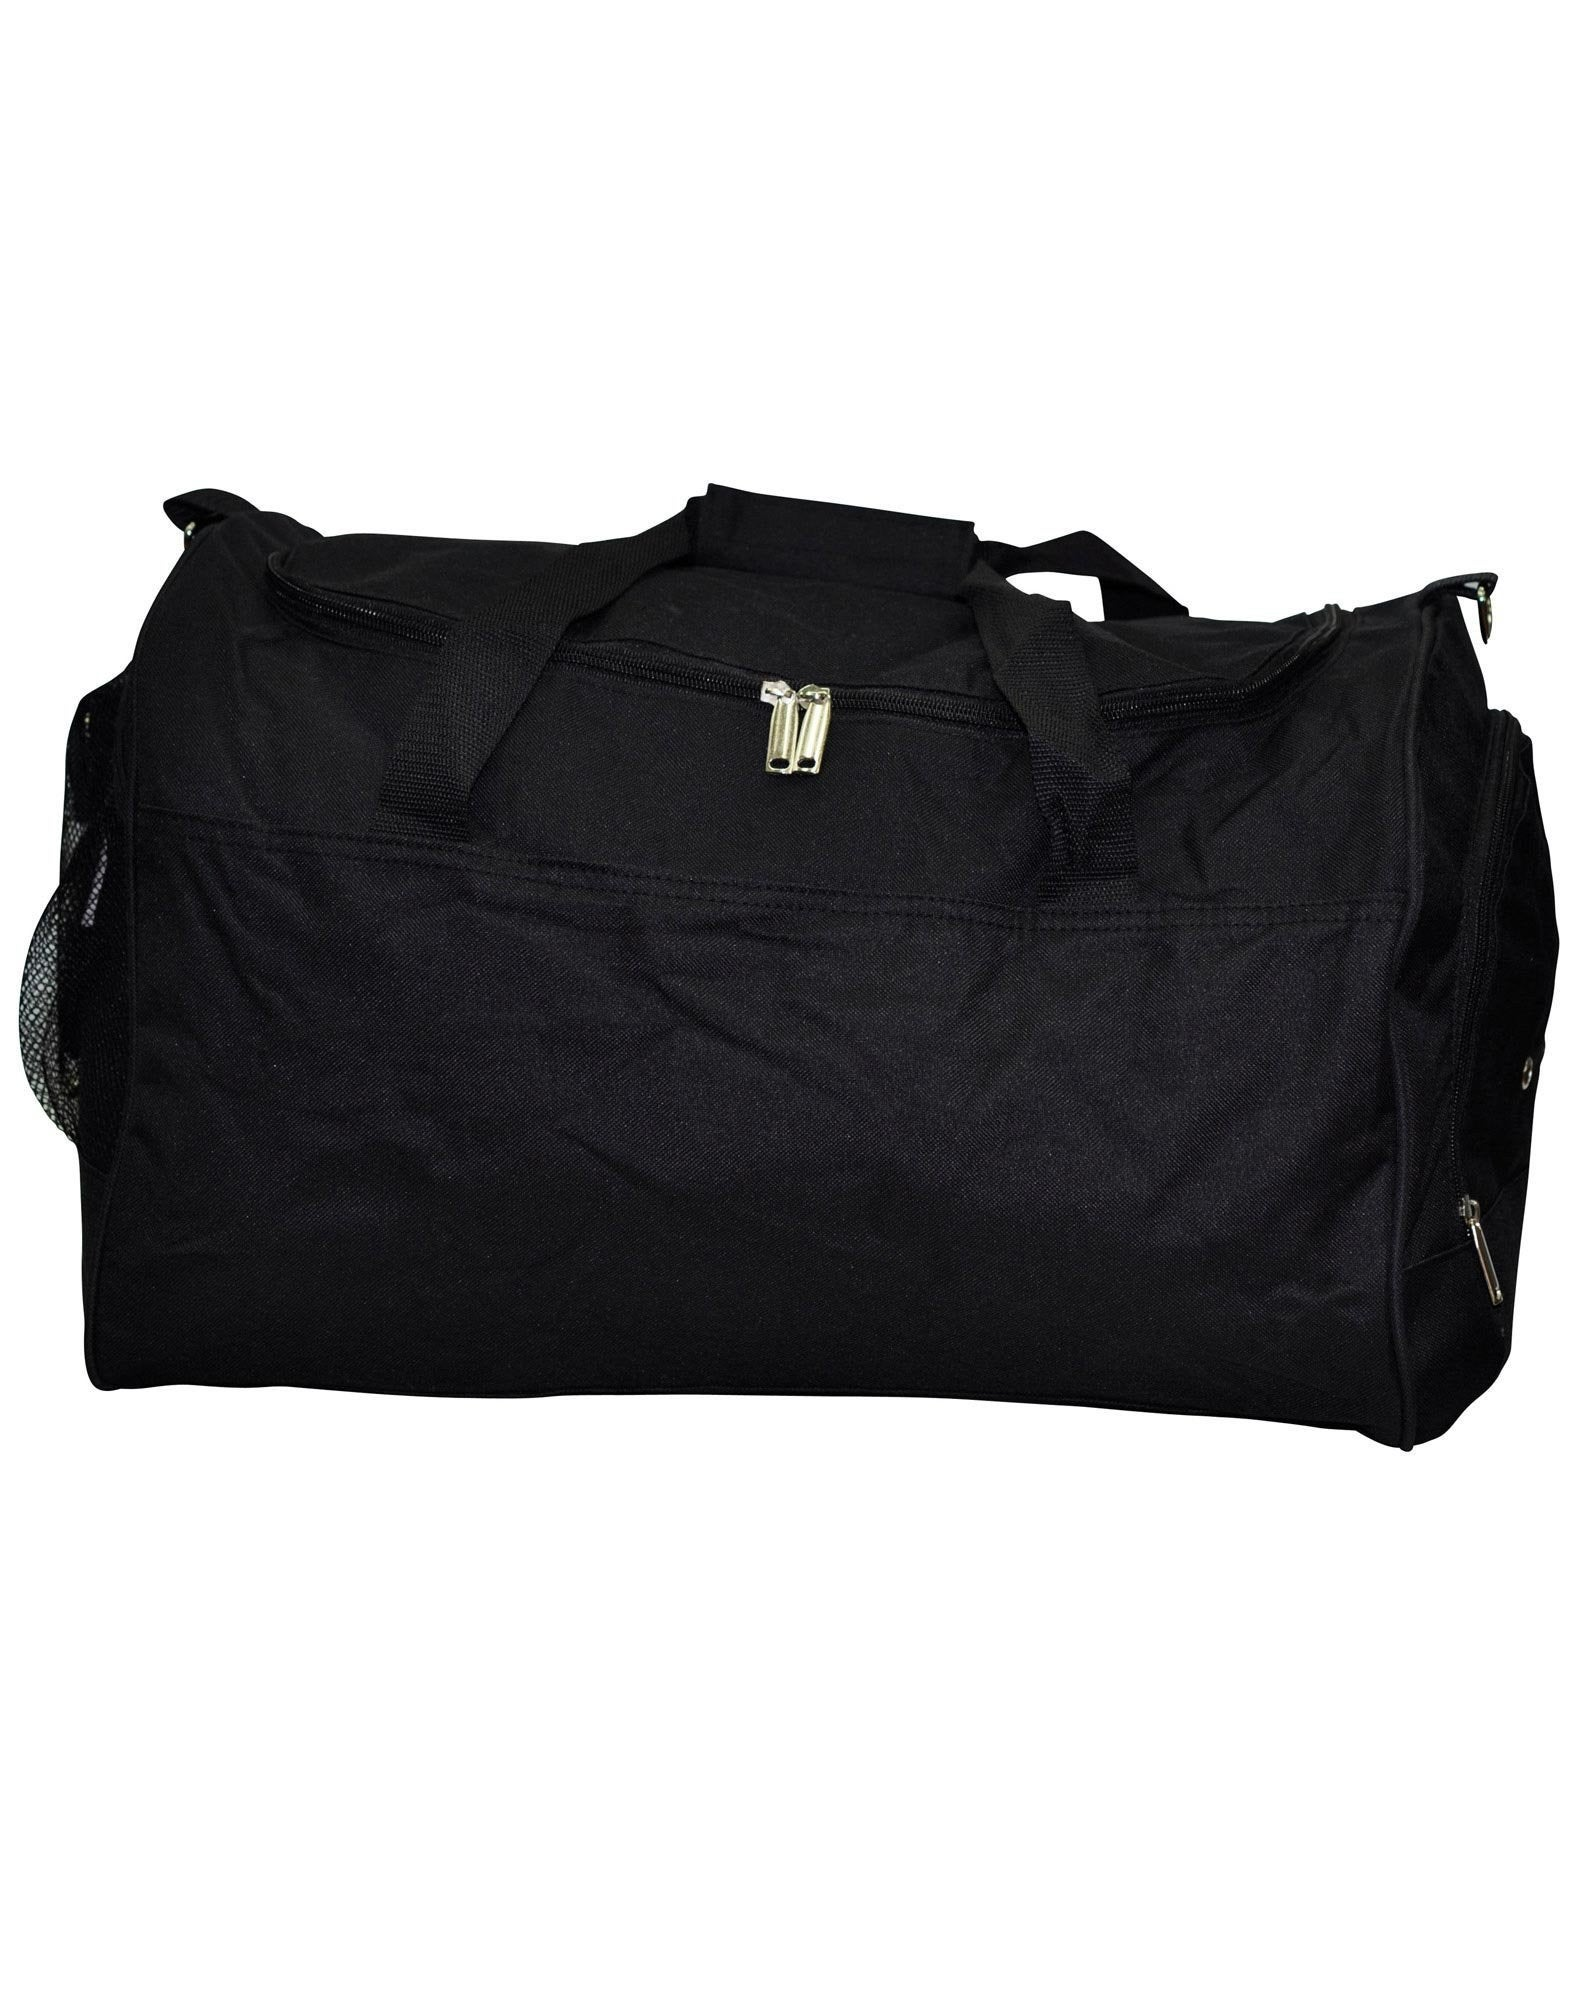 Basic Sports Bag with Shoe Pockets